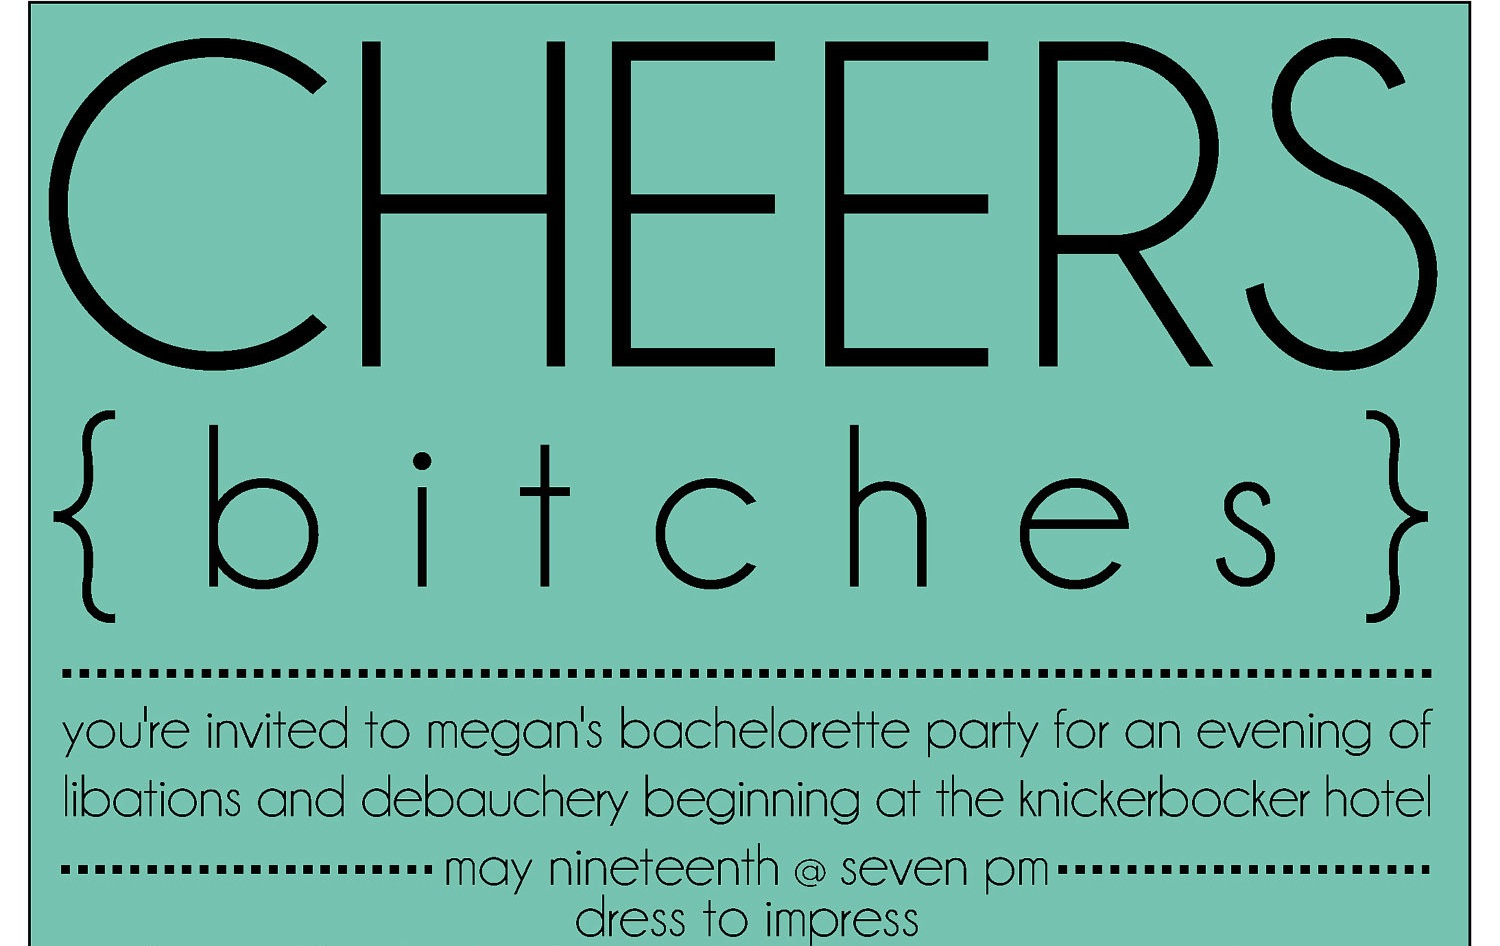 cute birthday invitation quotes ; funny-bachelorette-party-invitations-And-the-%25C3%25BCberraschend-Bachelorette-and-great-ideas-9